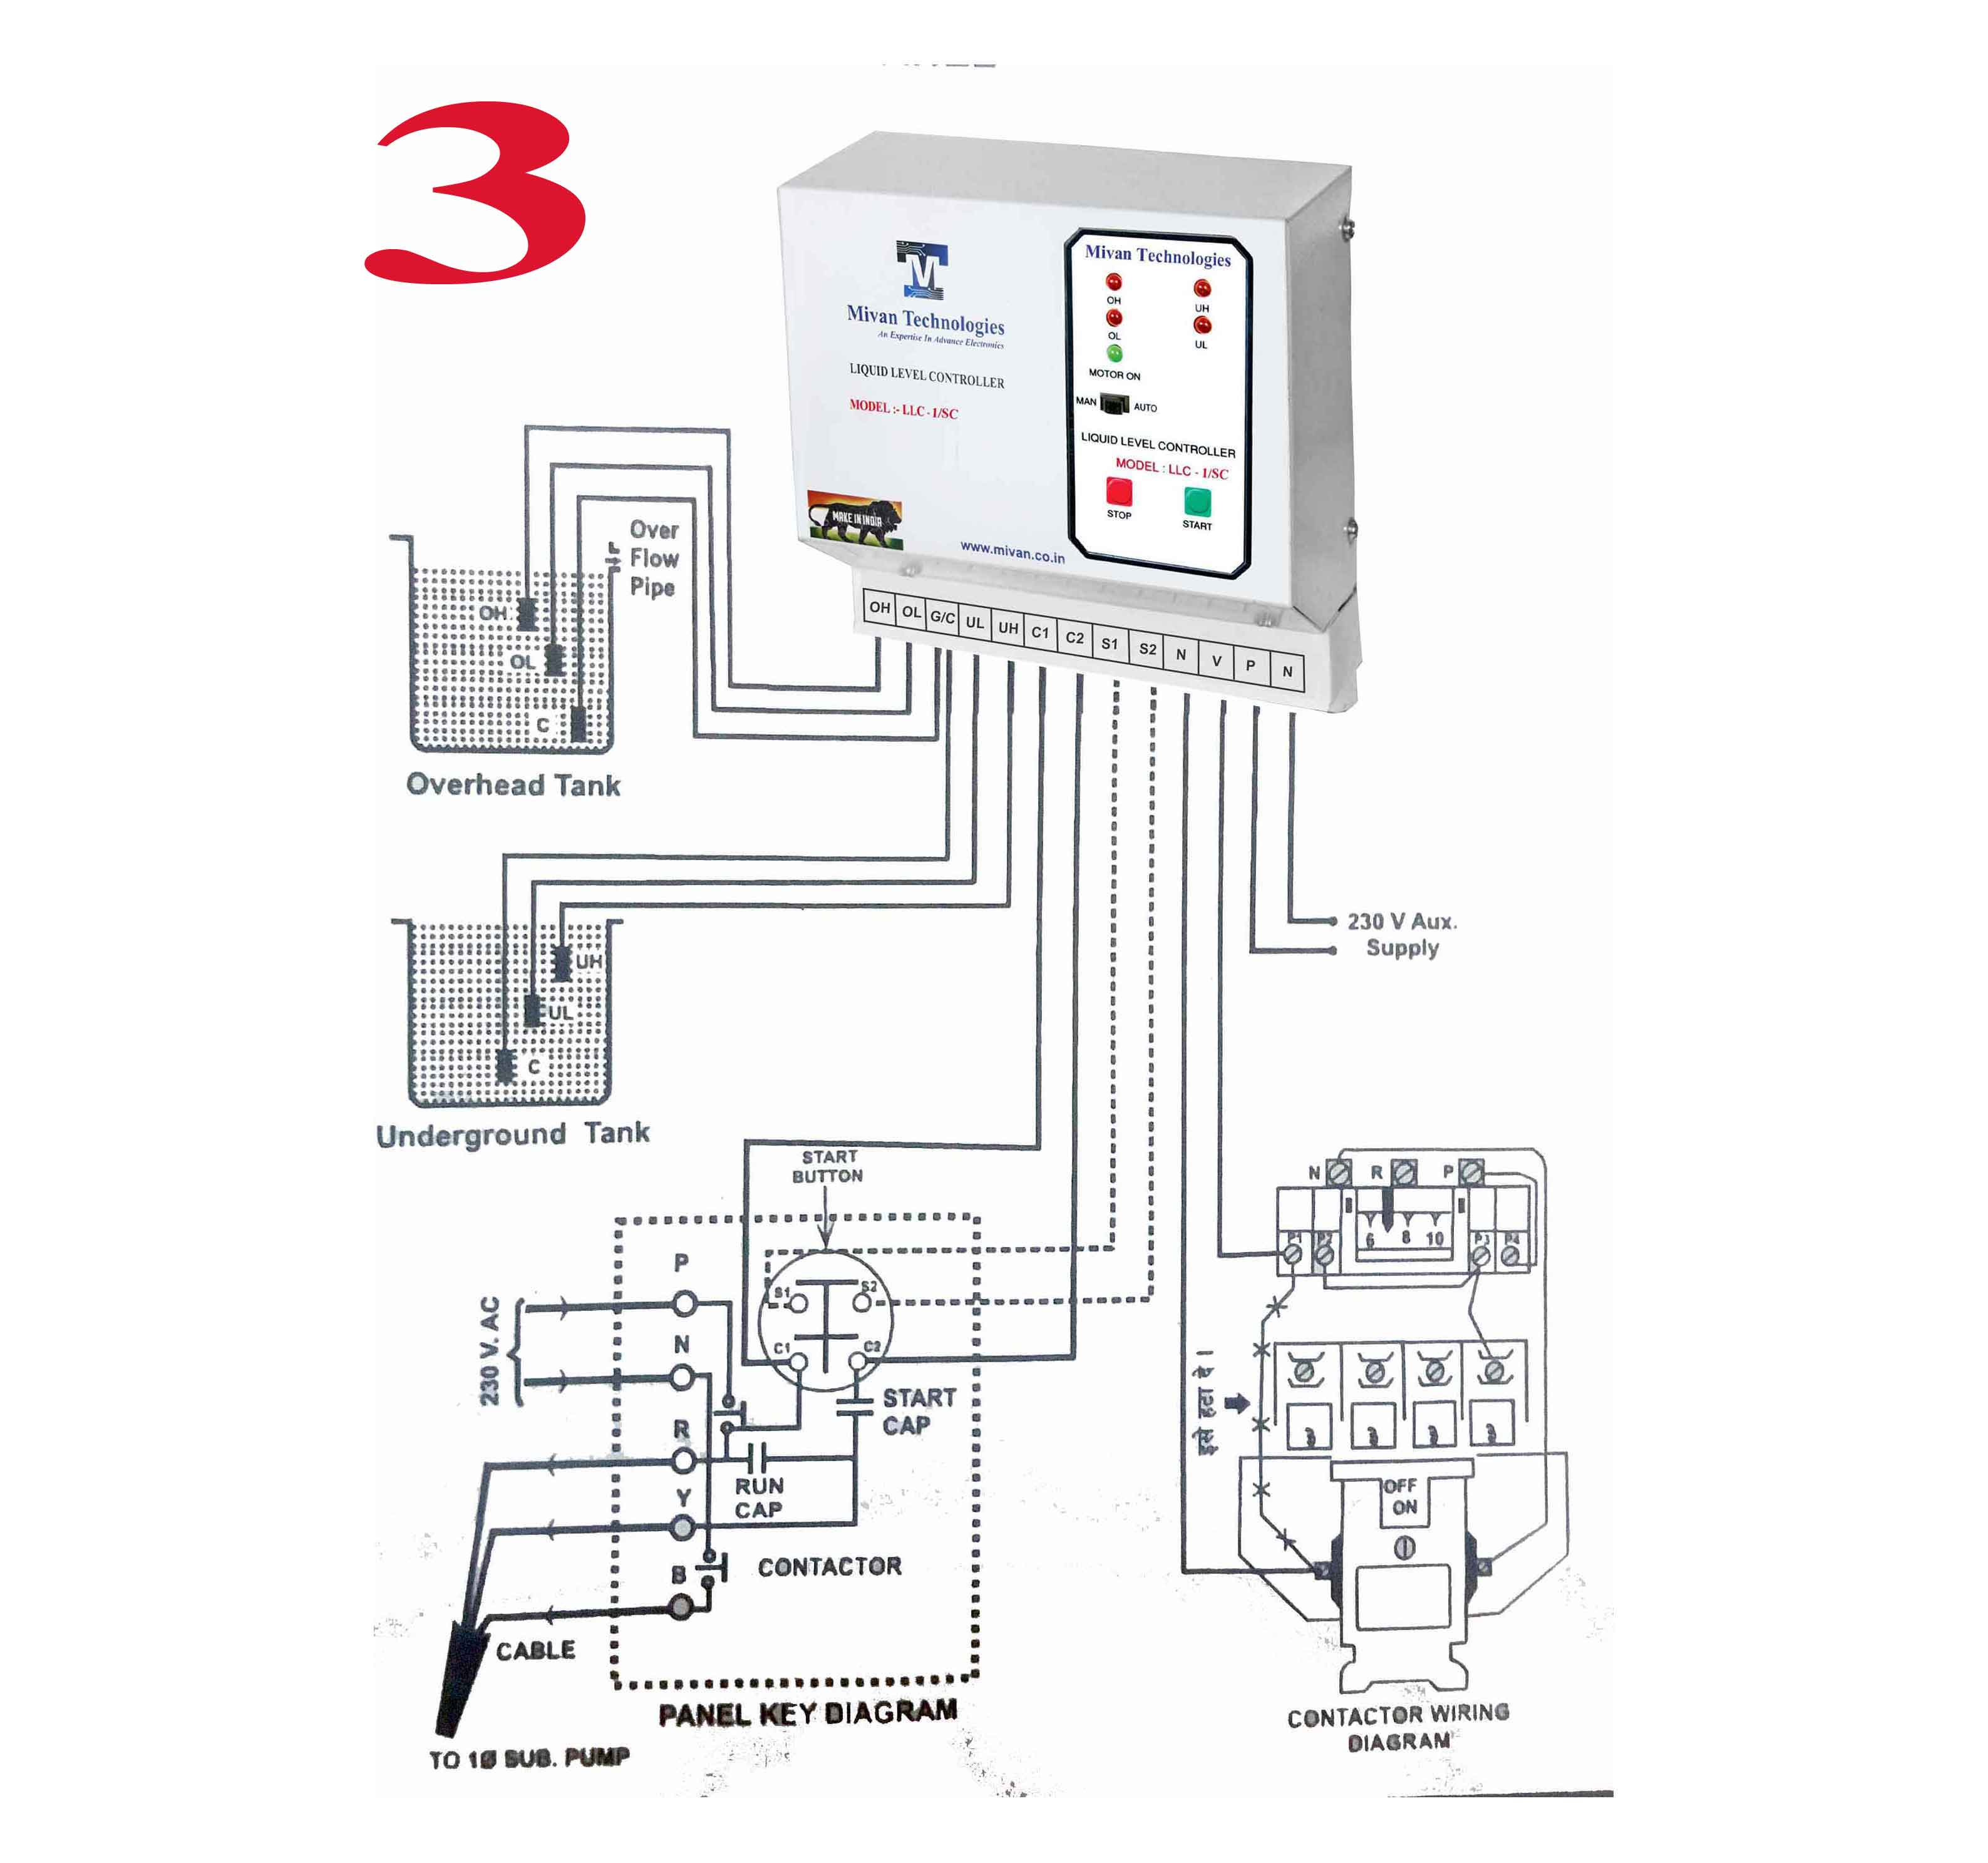 llc com water level controller for all type of starter it can connect withs mivan co in assets img product